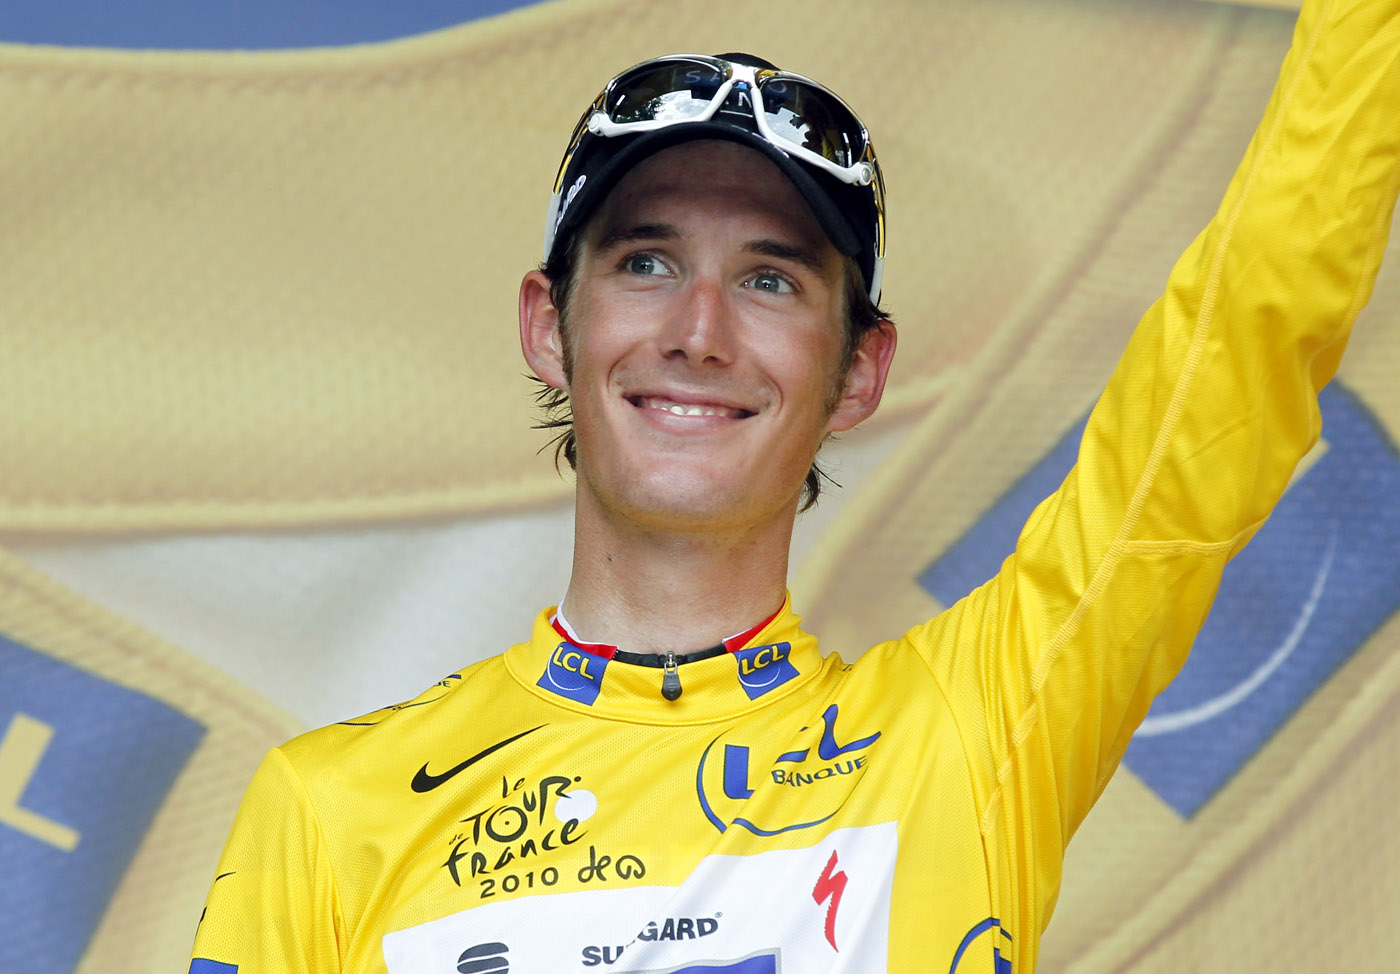 Andy Schleck in yellow, Tour de France 2010 stage 9